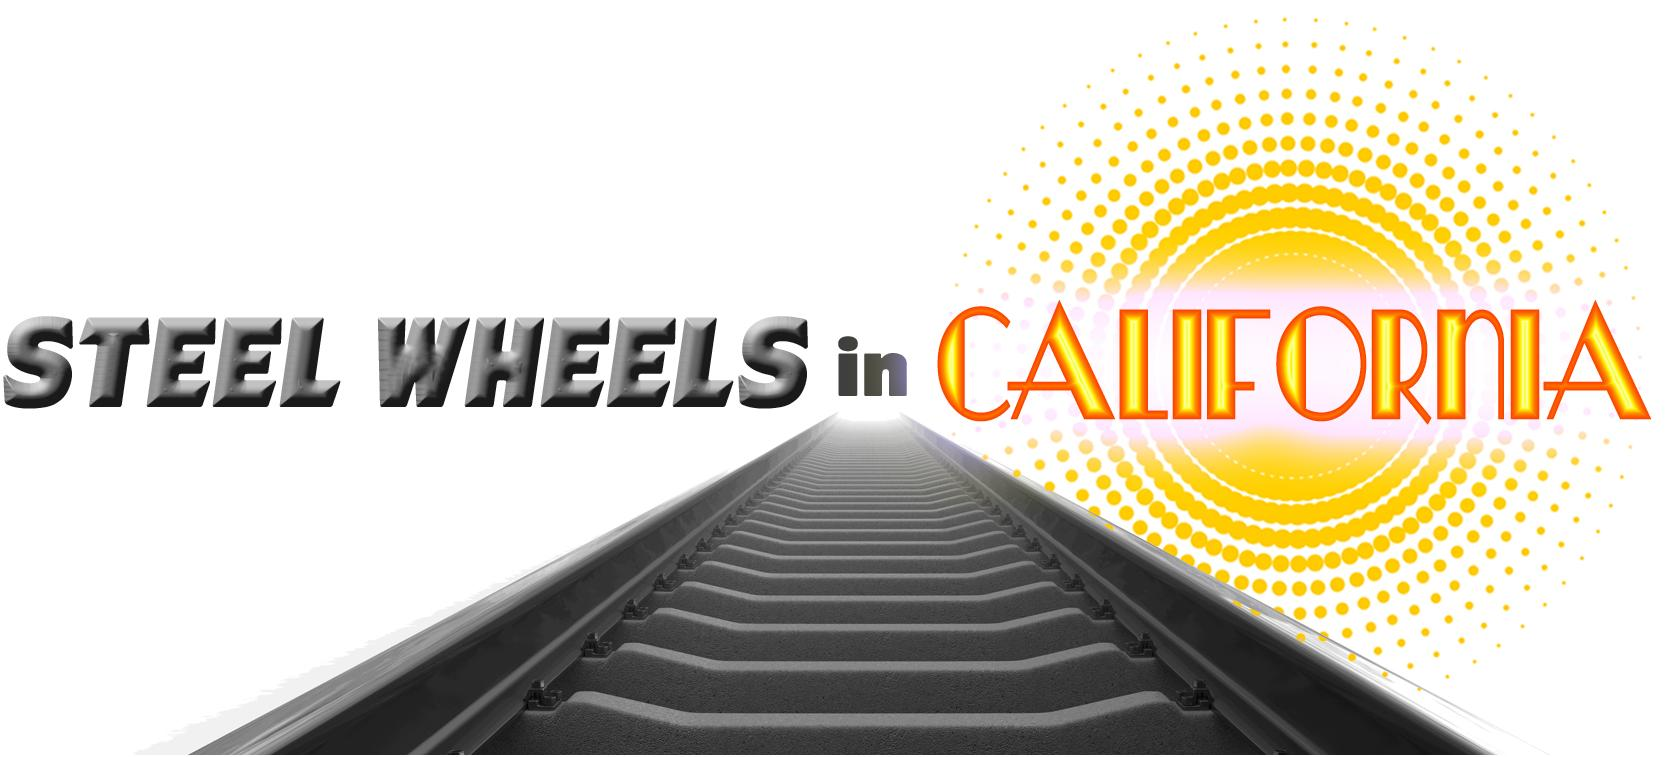 Steel Wheels in California